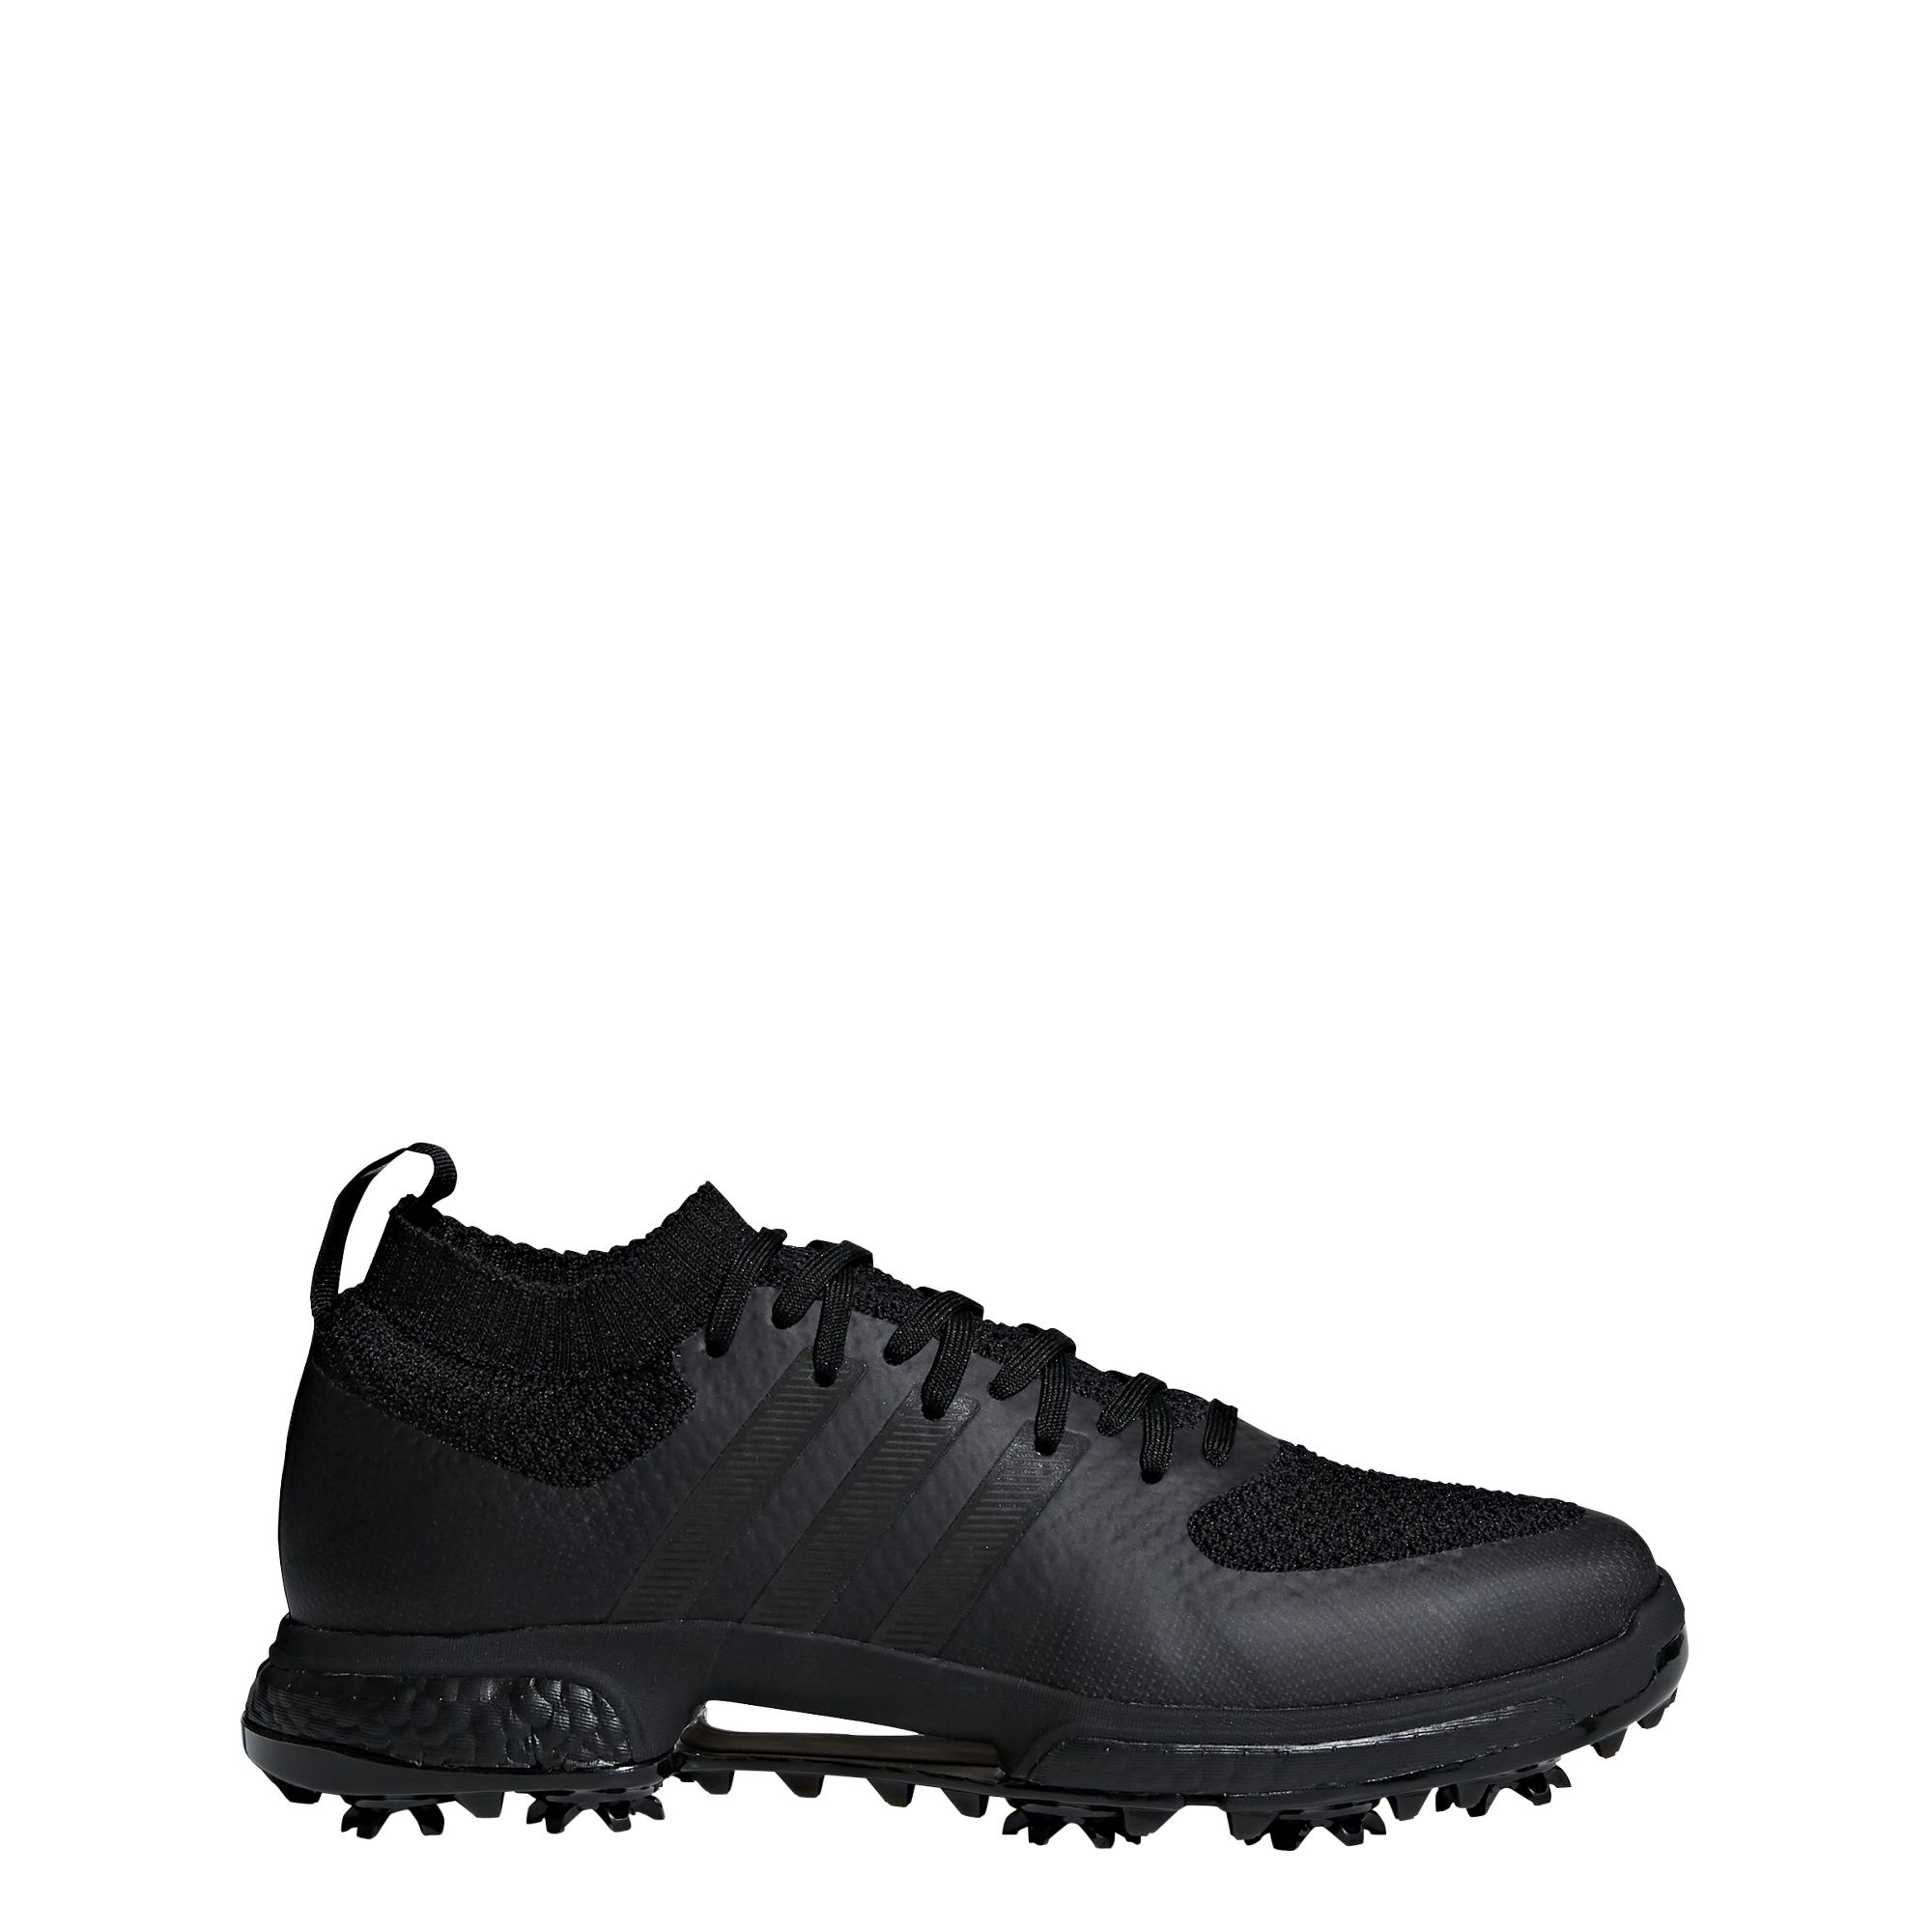 Men's Coloured Tour360 Knit Spiked Golf Shoe - Black